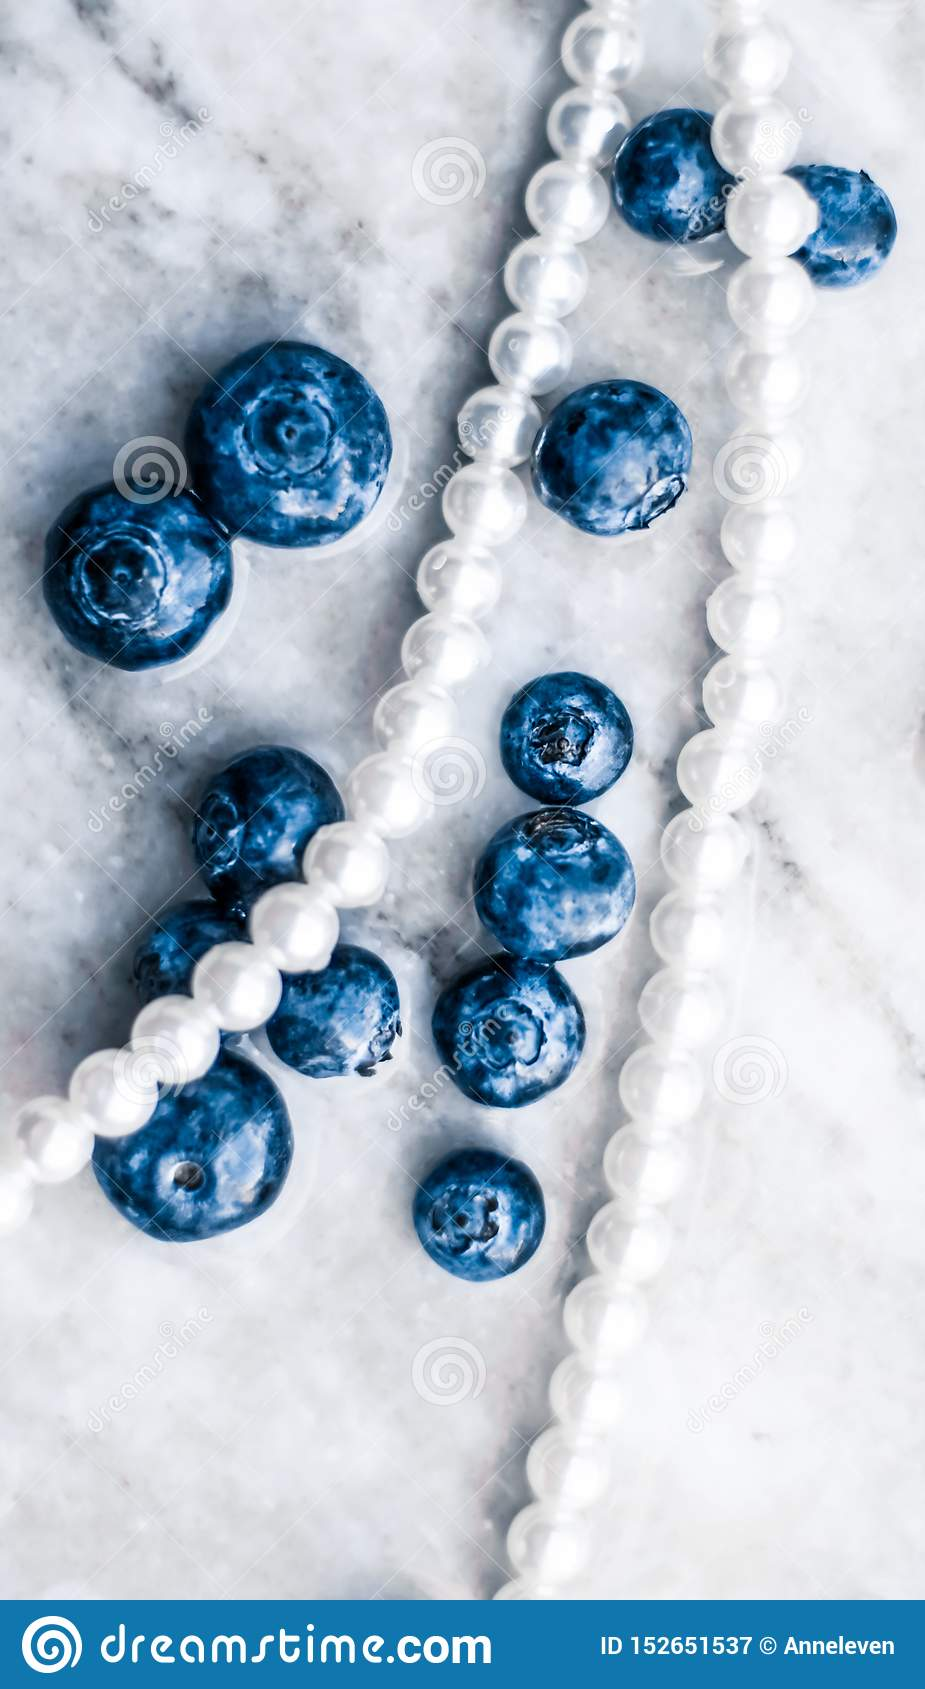 Free Pearls Stock Photo - FreeImages.com